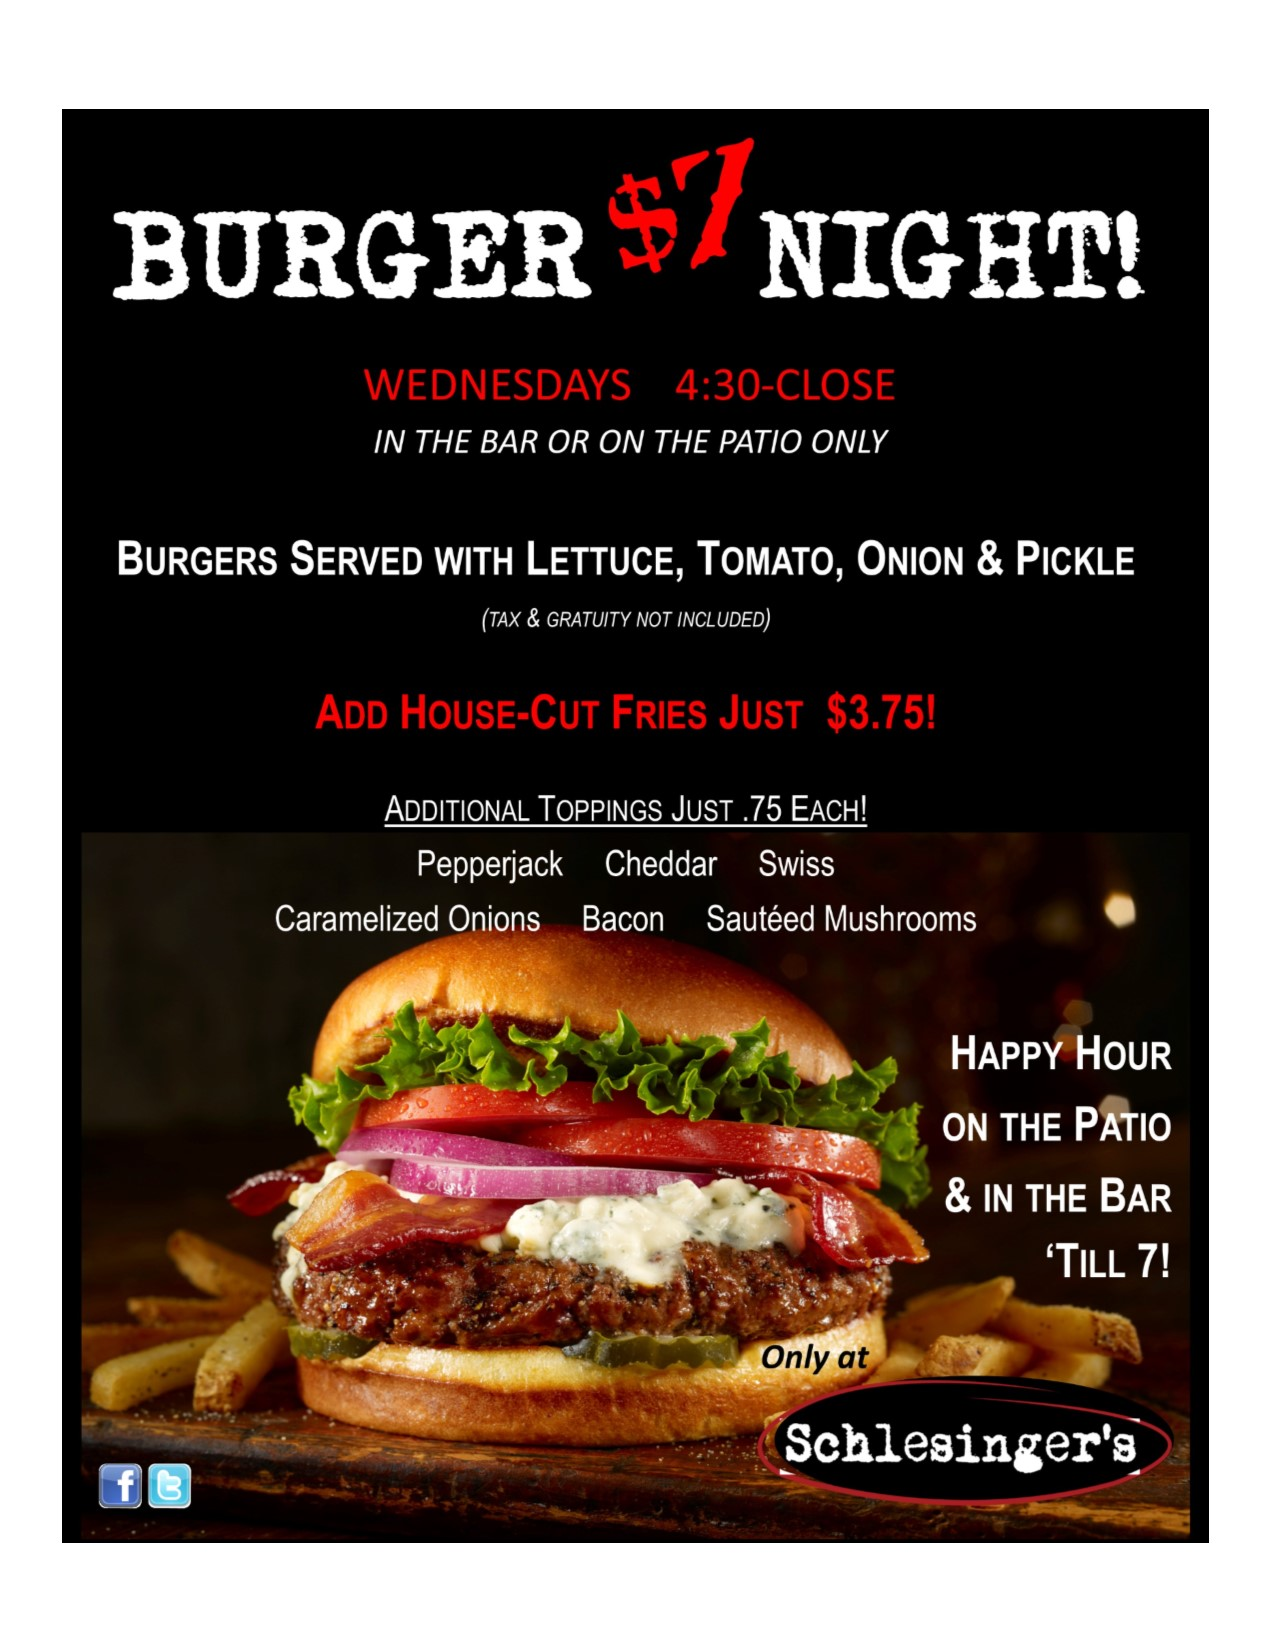 7-burger-night-lower-res